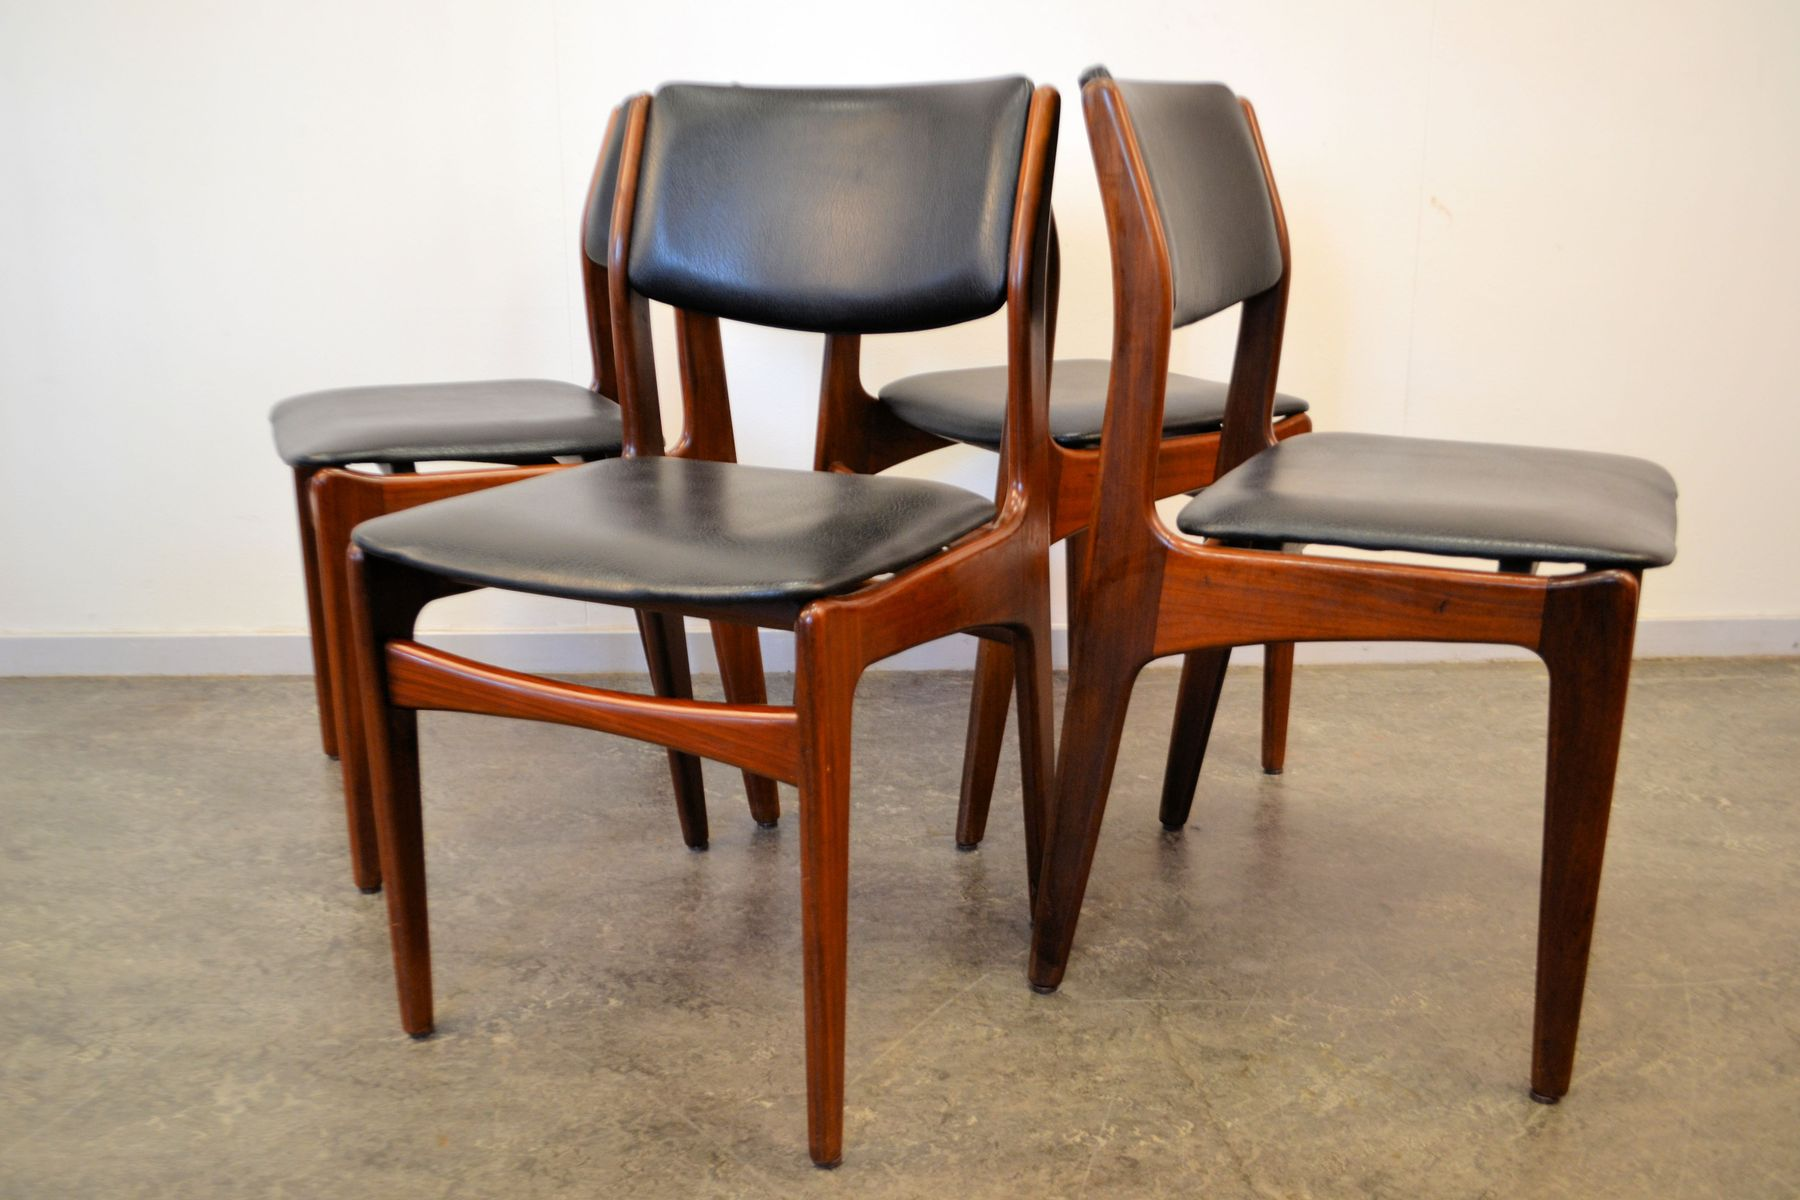 Vintage dutch design dining chairs set of 4 for sale at for Dutch design chair karton